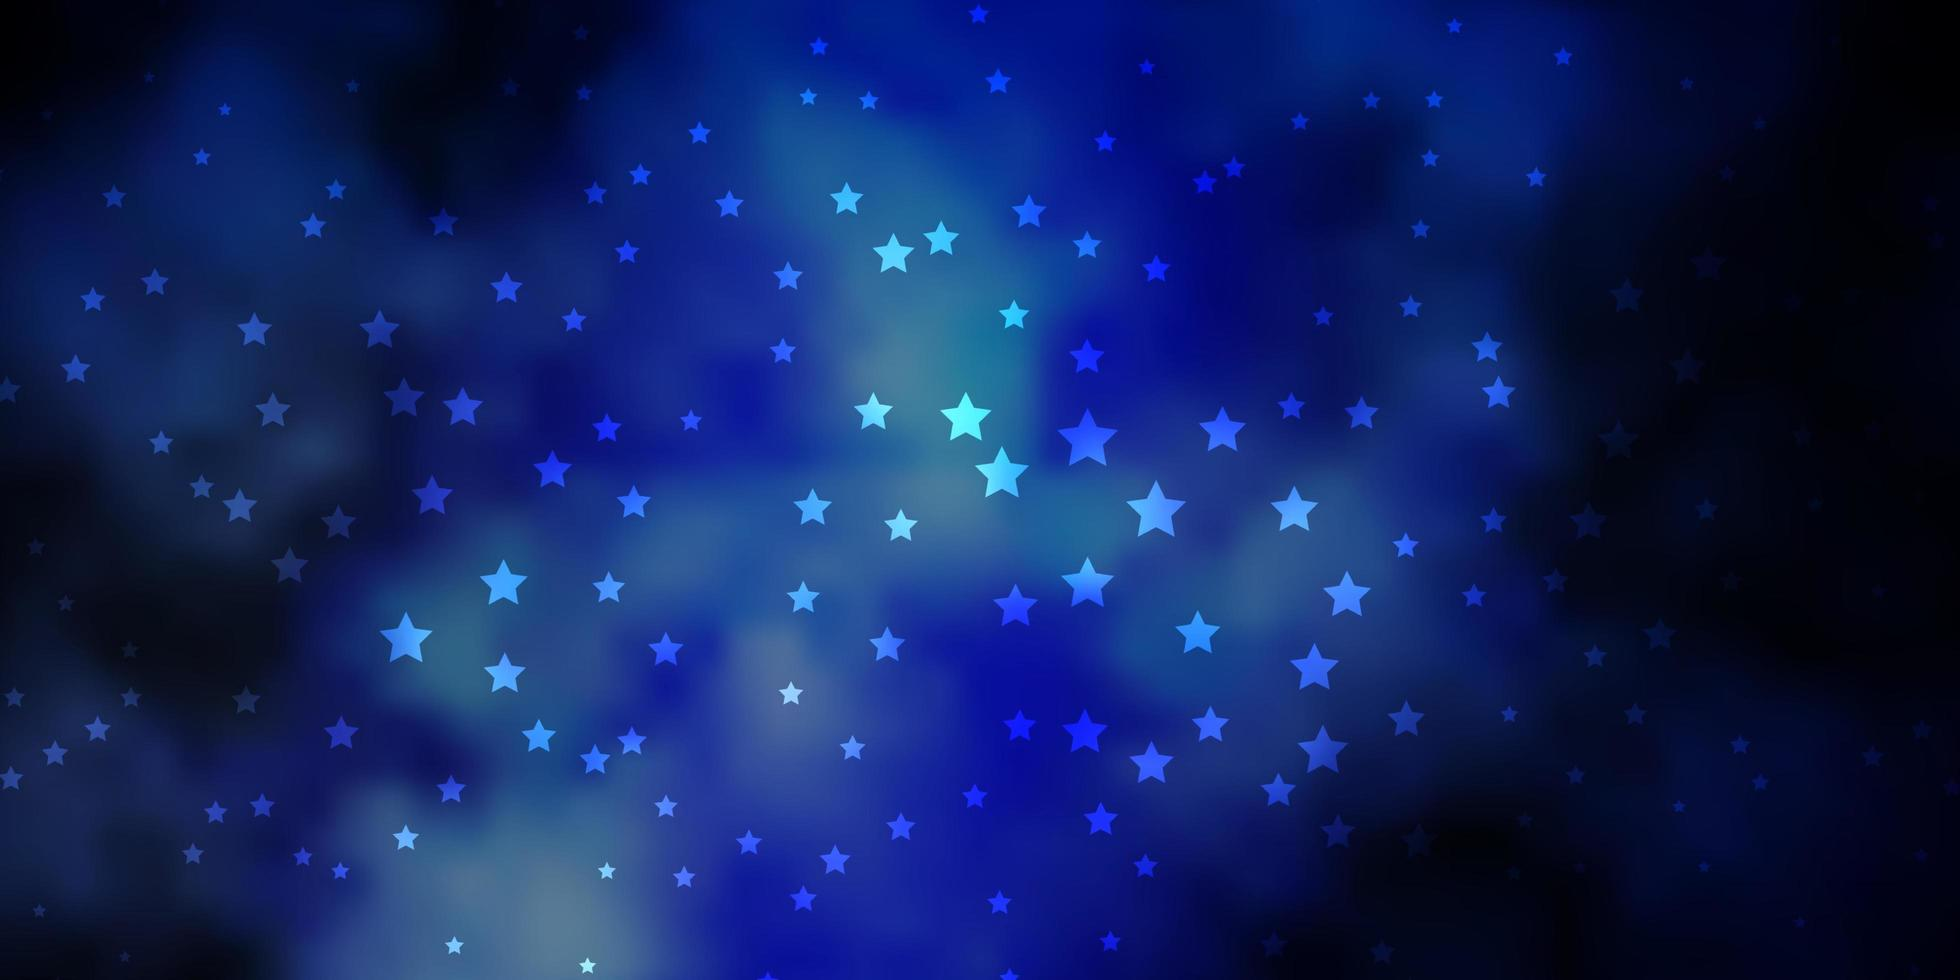 Dark BLUE vector pattern with abstract stars.